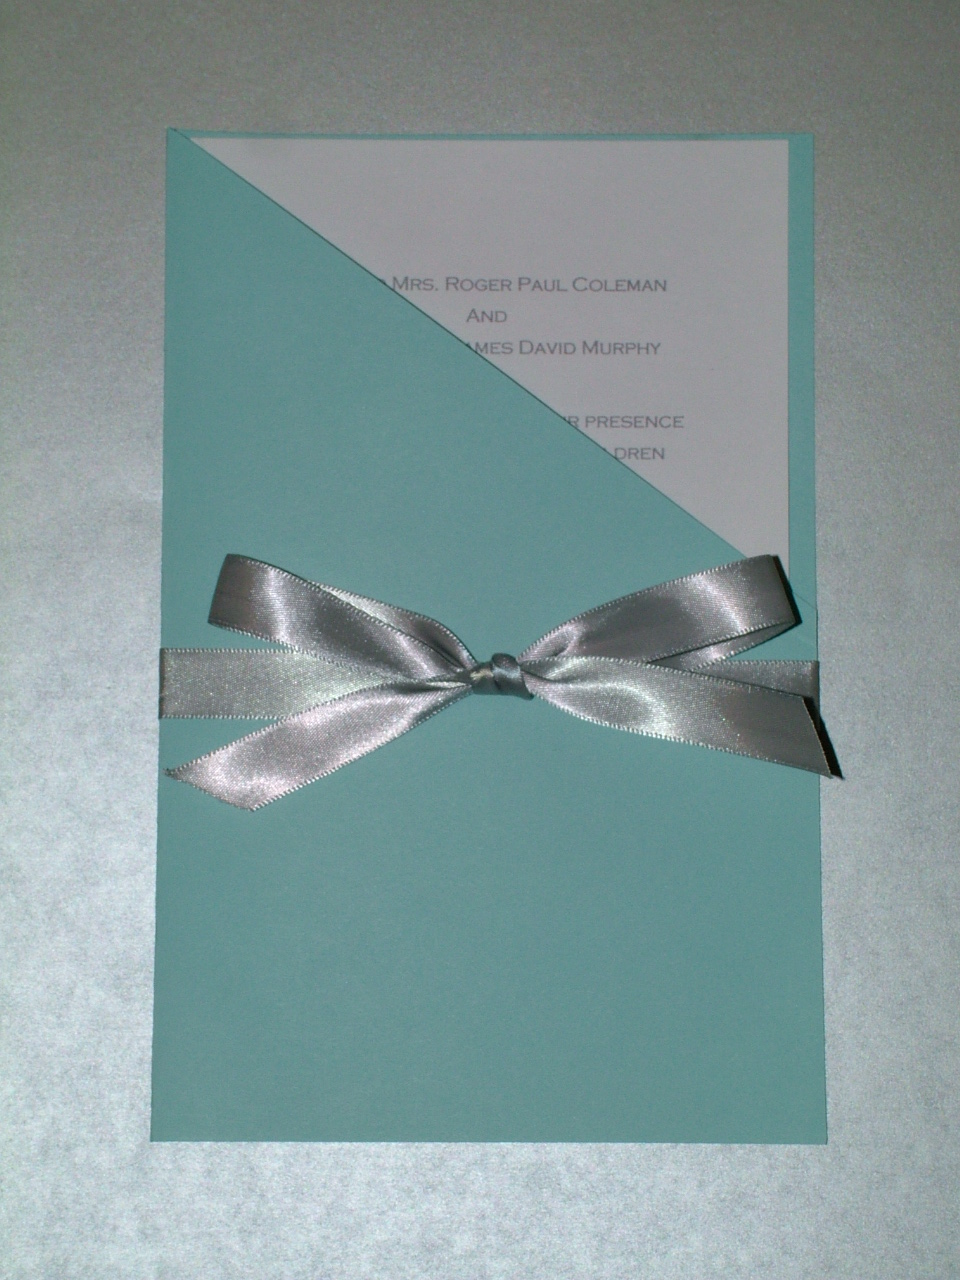 2008 wedding invitation style the classic invitations weblog invitations traditionally stopboris Choice Image